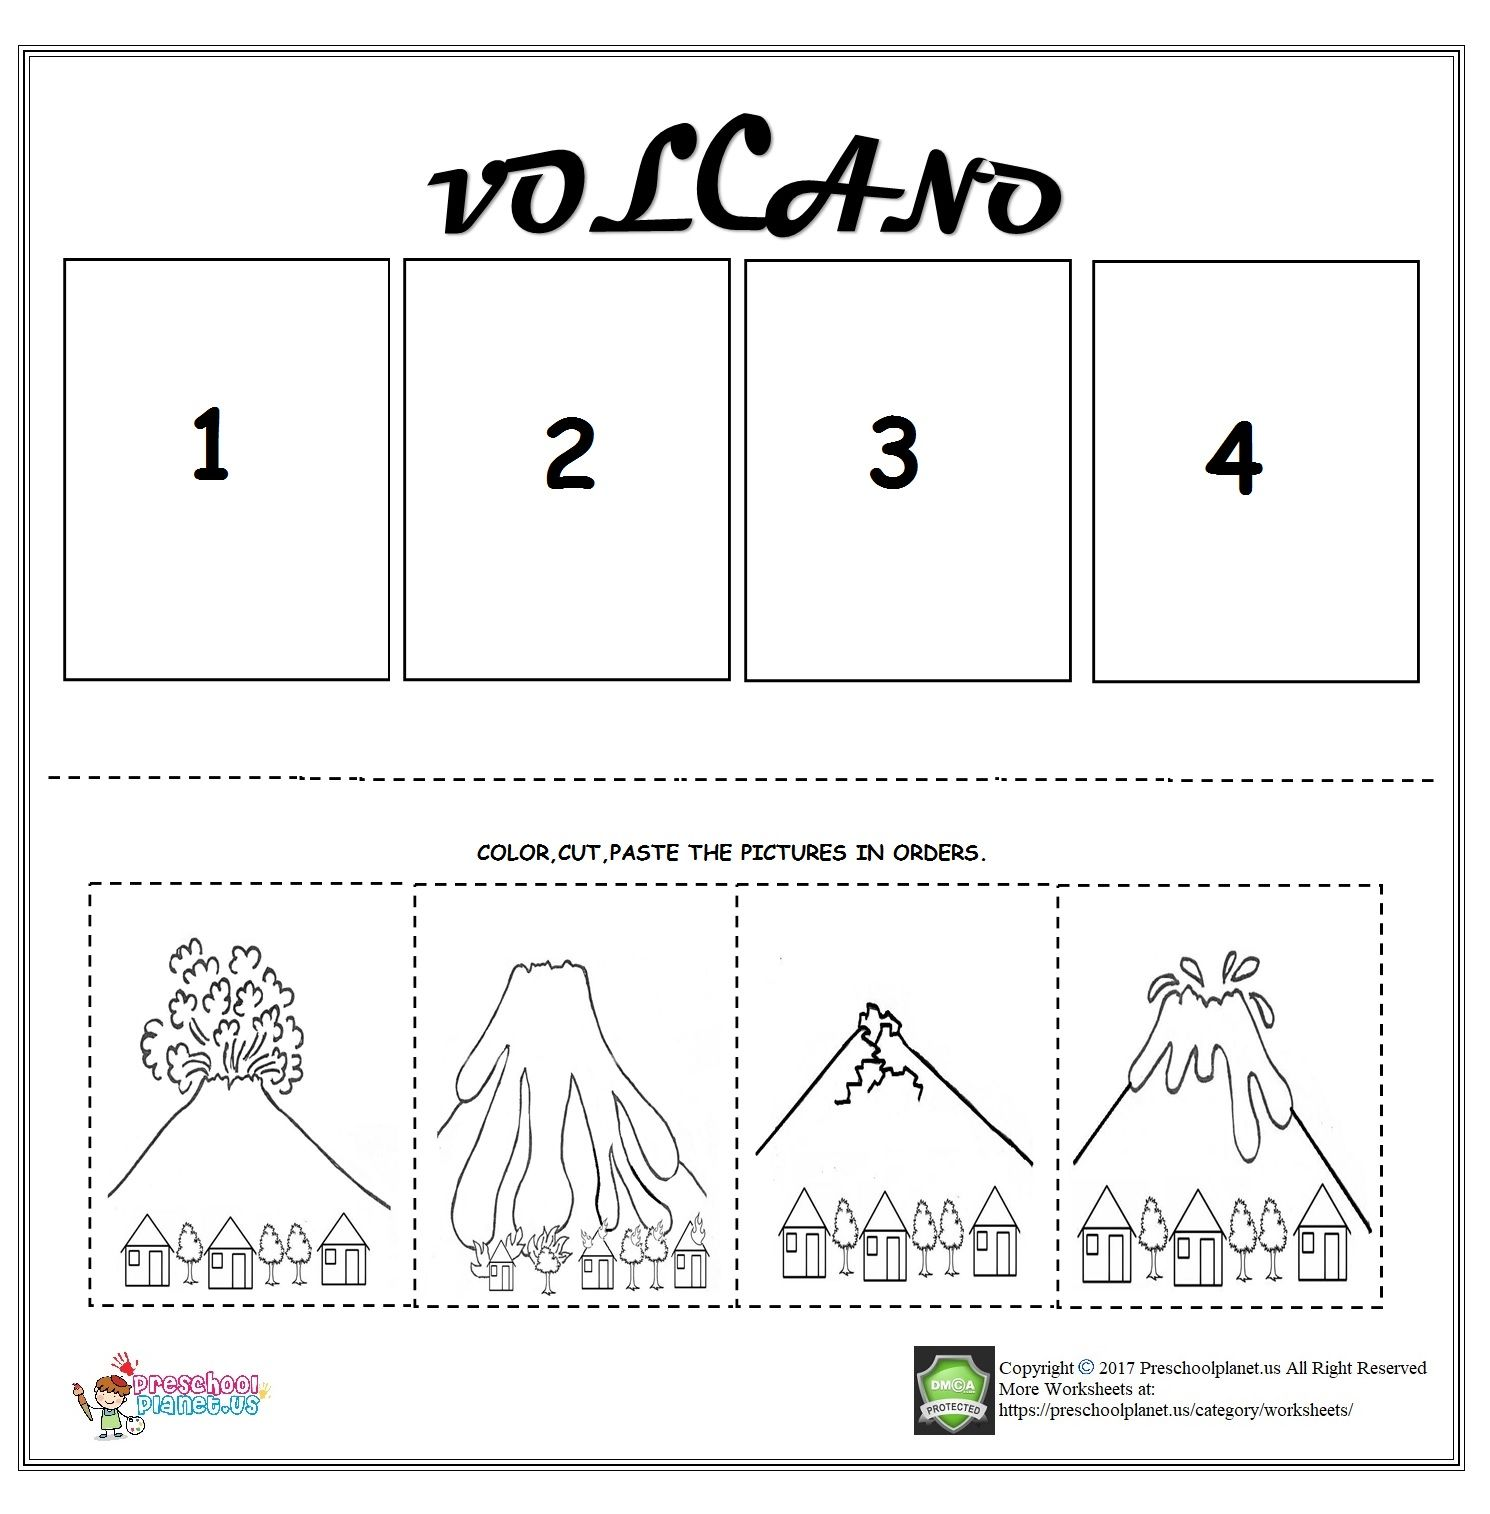 Volcano Worksheet